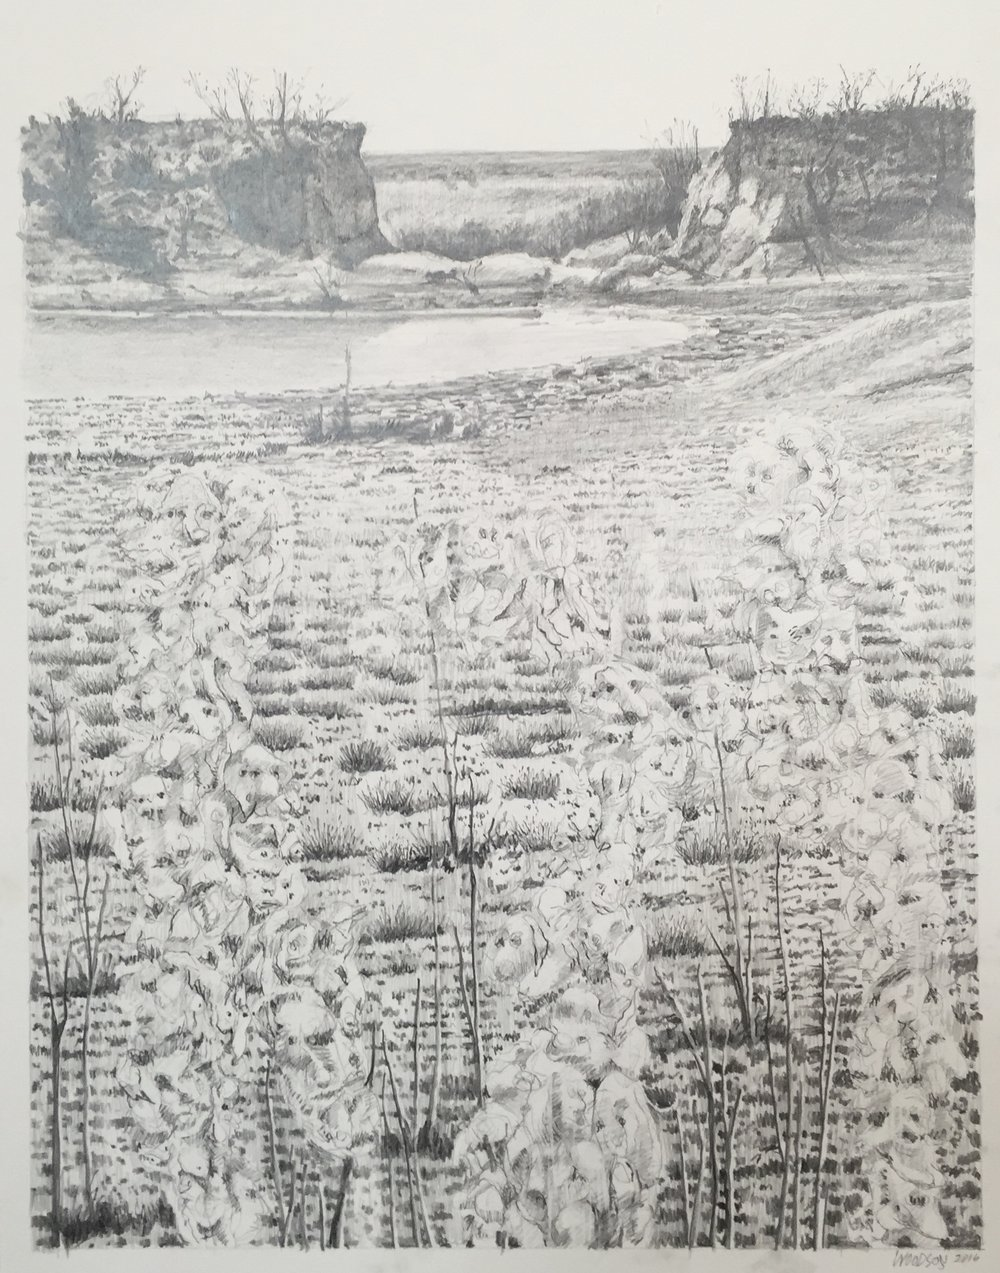 "Edwards Ranch Project Drawing 2016 graphite on paper  24"" x 19"" cat no 16002 C"